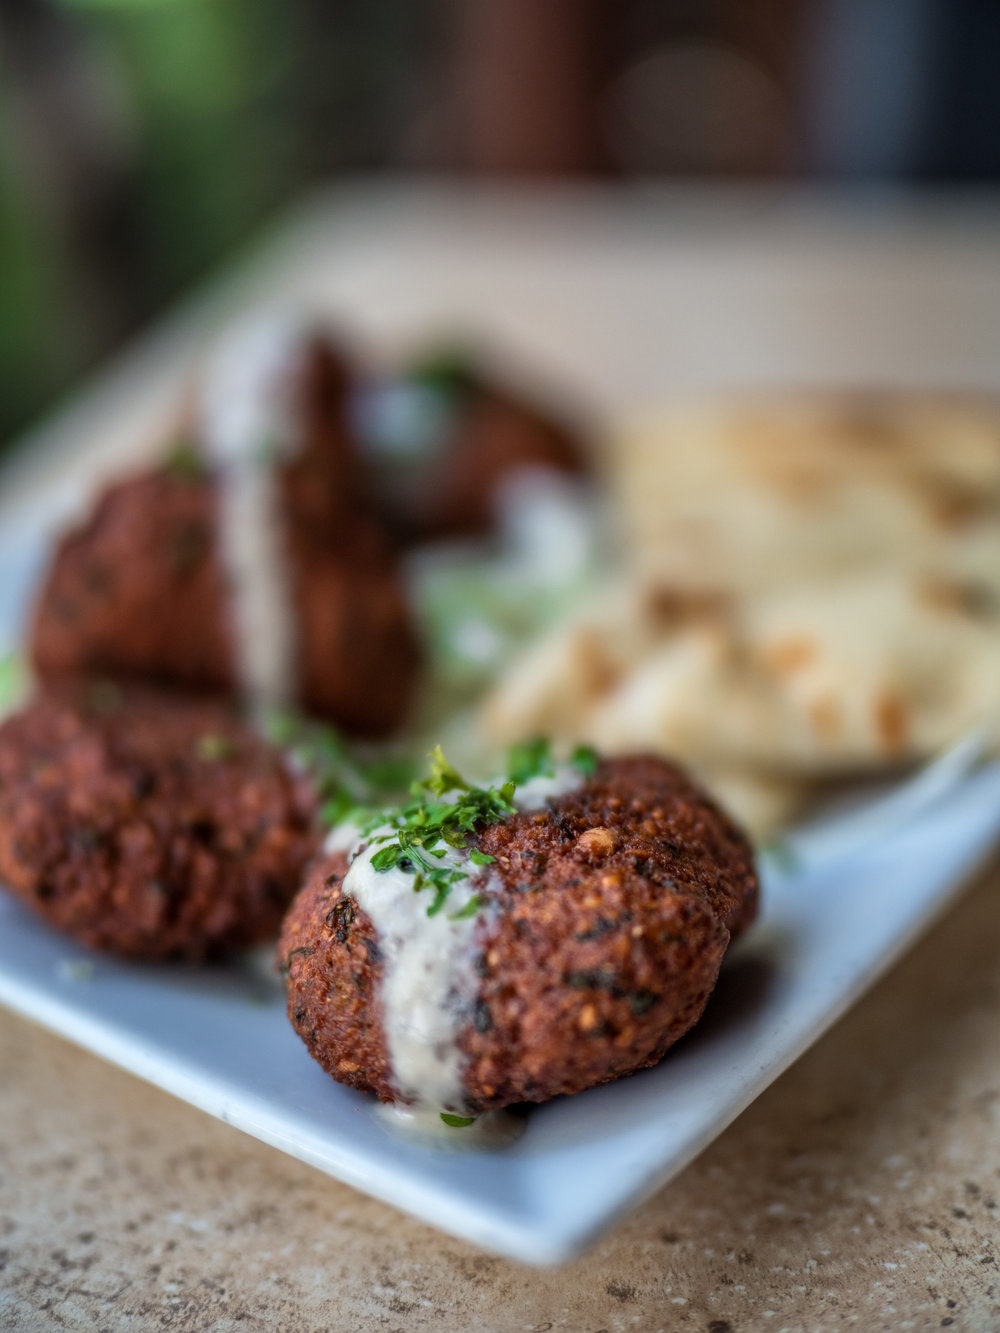 Everyone loves a good falafel, available at Kan Zaman in Honolulu's Chinatown District.